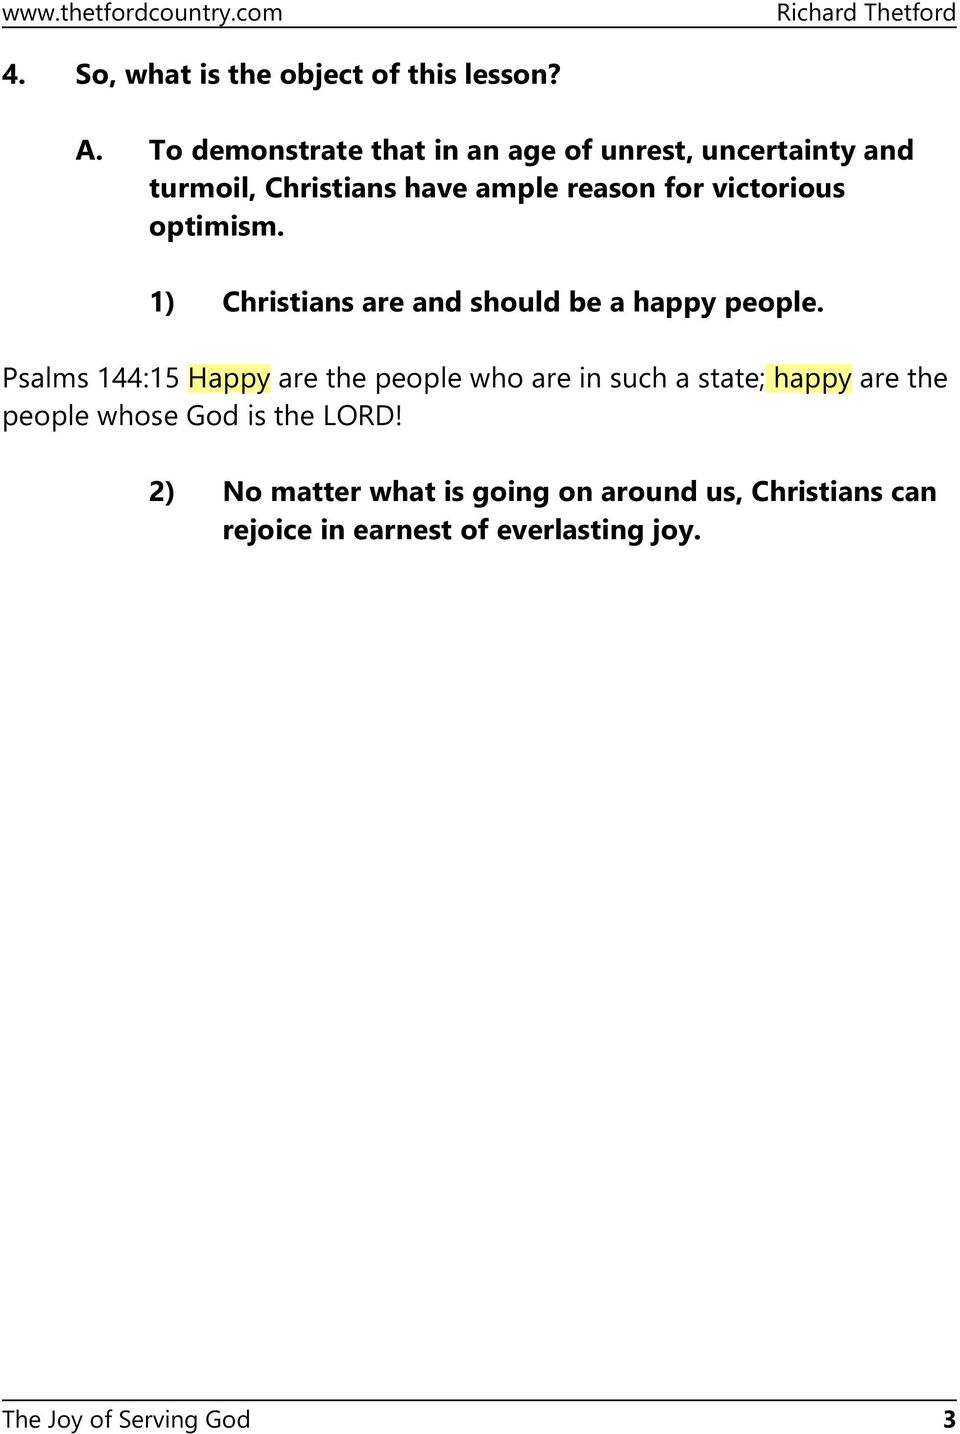 victorious optimism. 1) Christians are and should be a happy people.